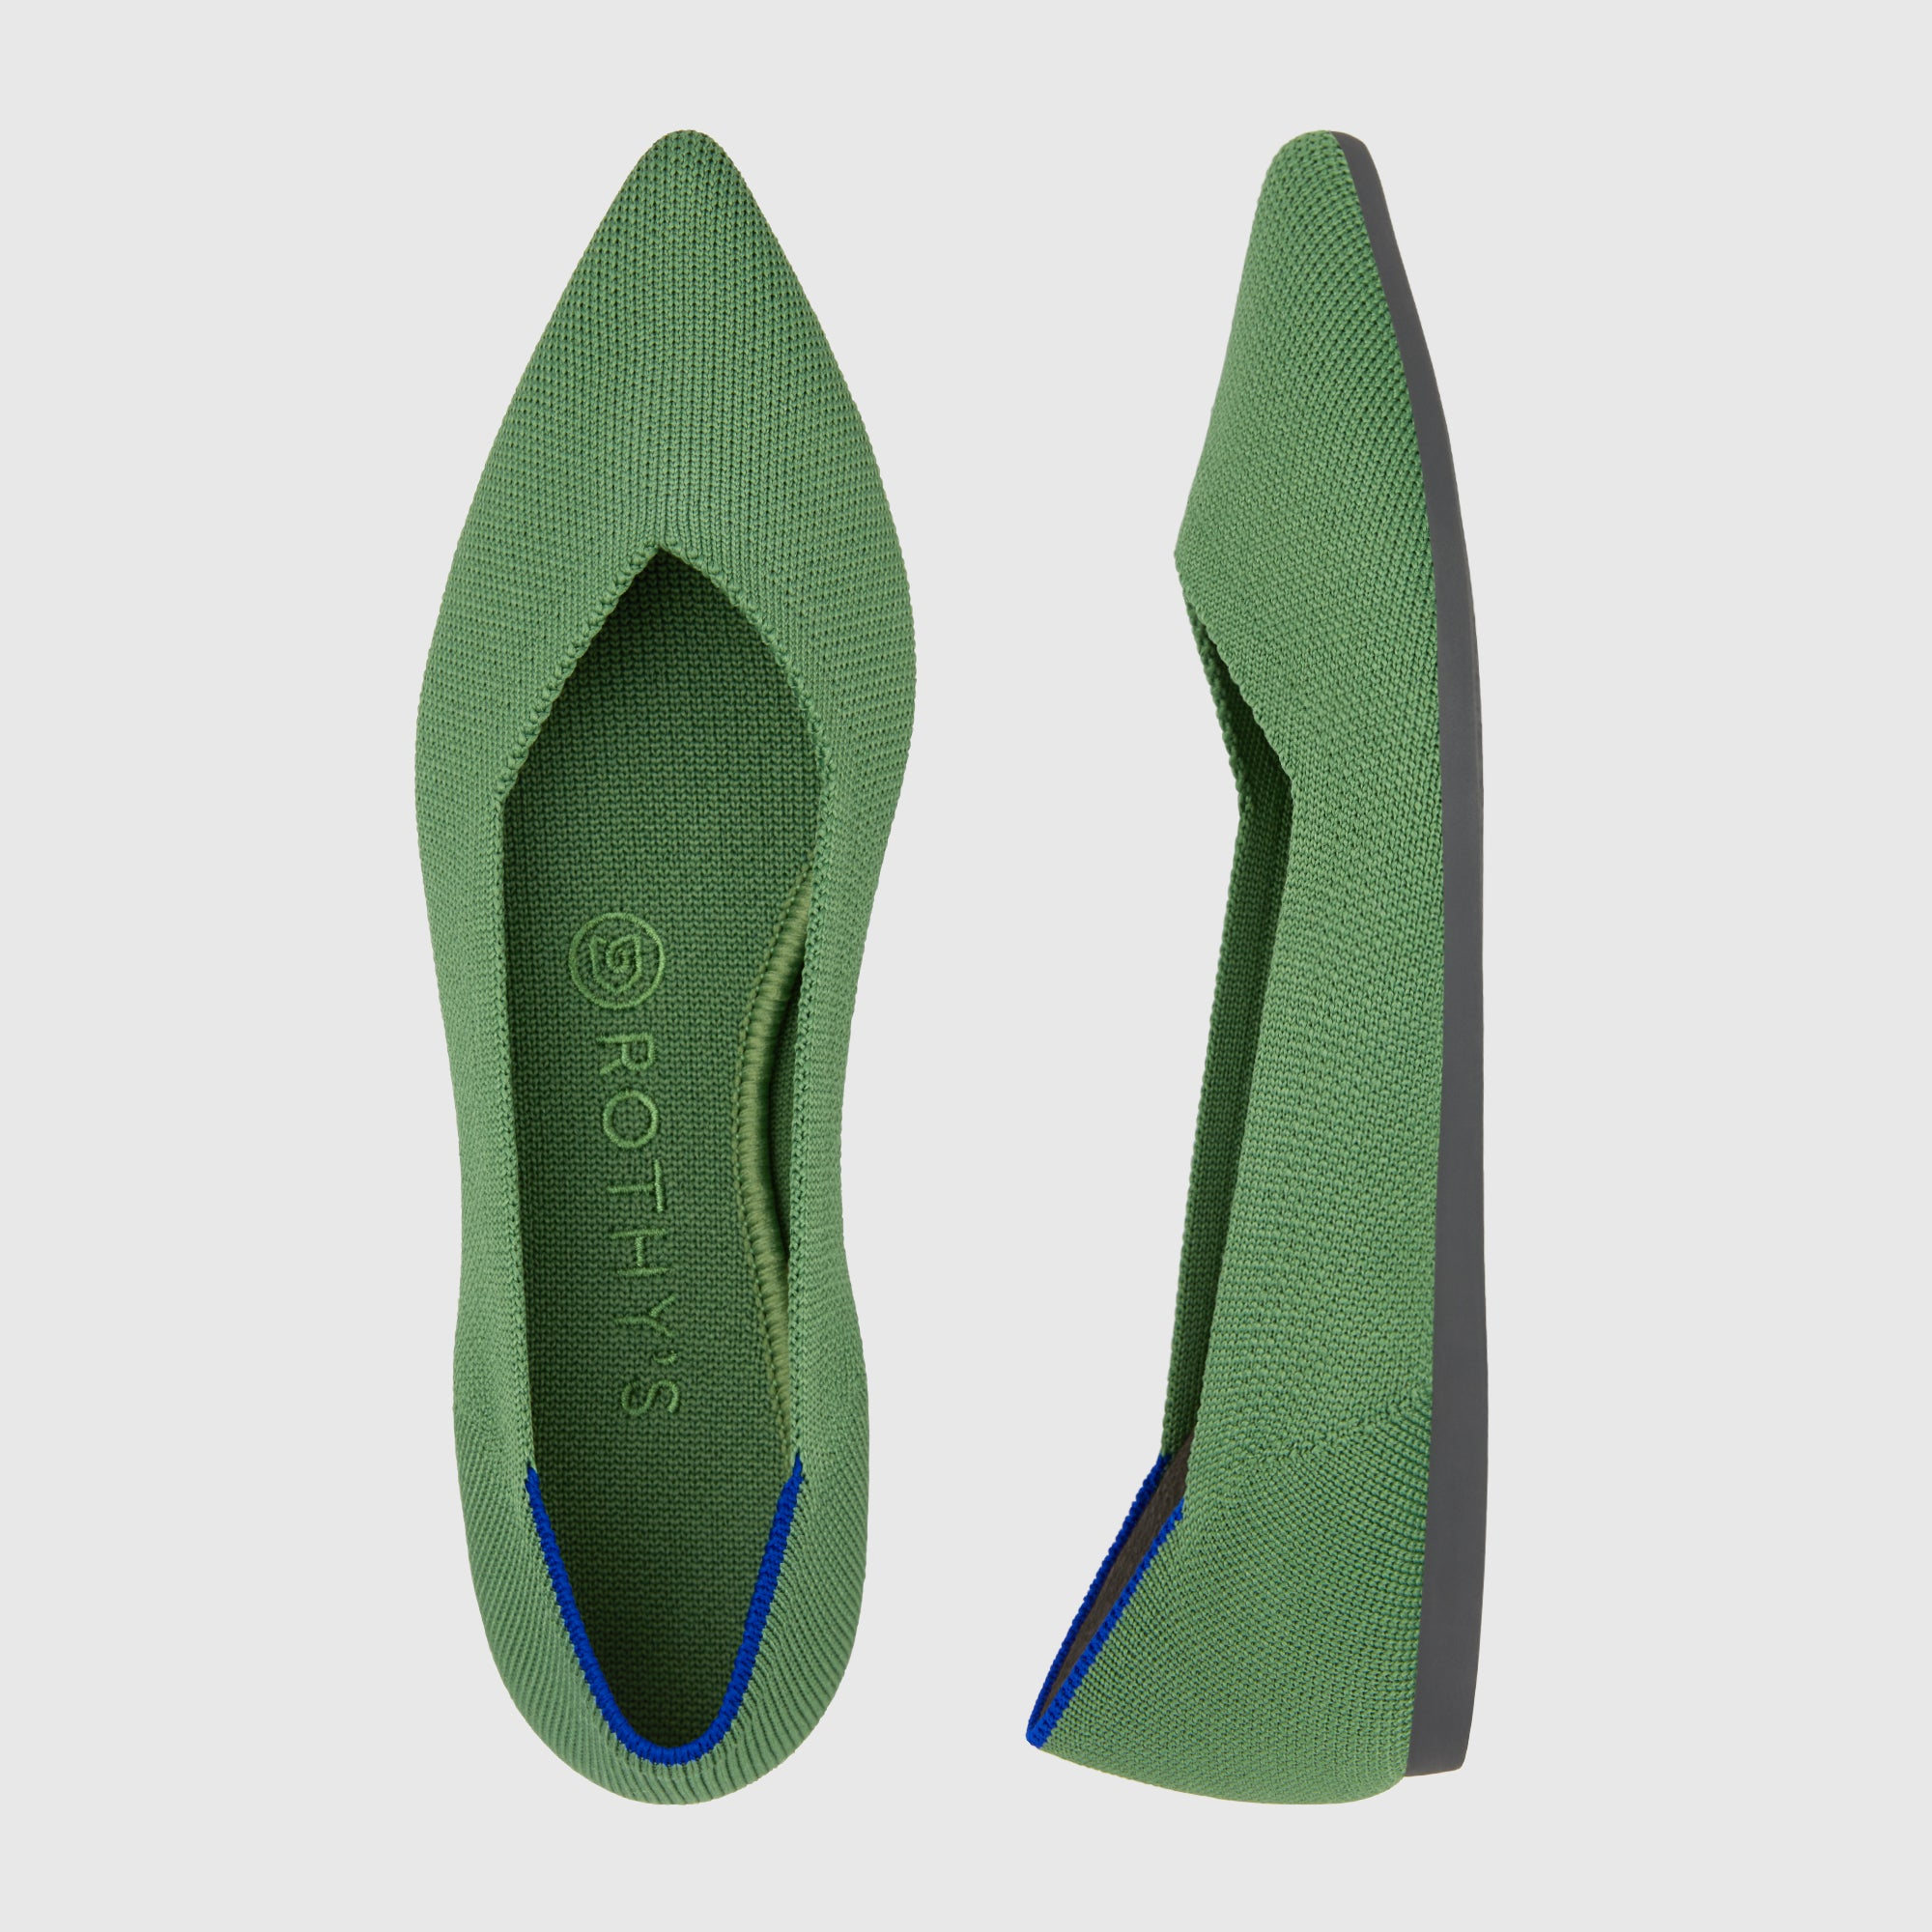 The Point shoe in Willow shown from the top alongside a side view showing the outsole.